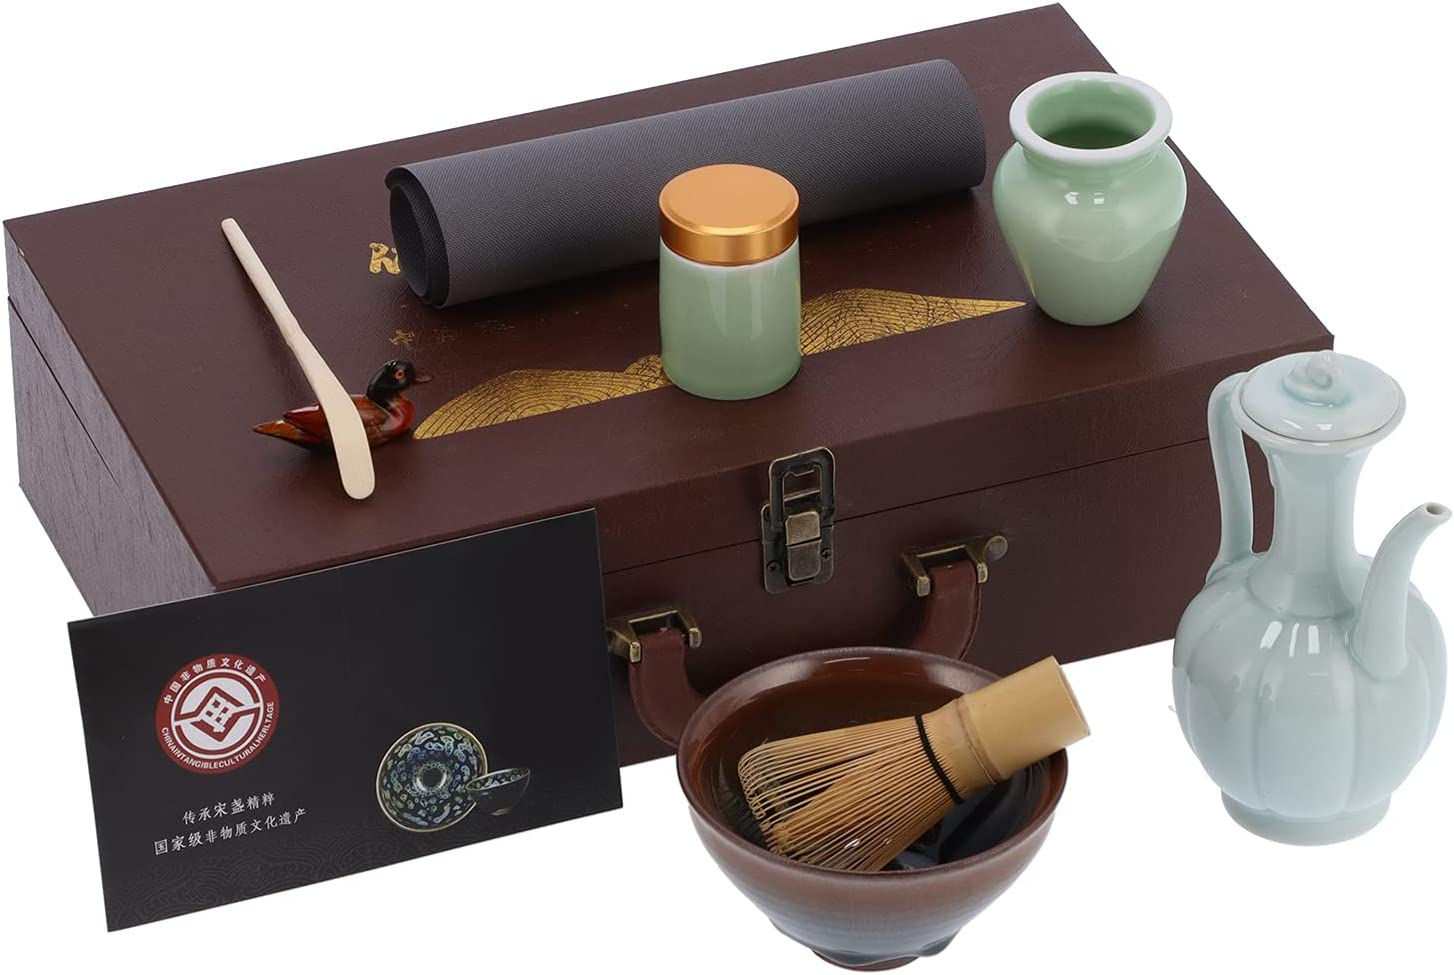 Sren Matcha Tool Discount mail order Set Good for Selling and selling Useful Your Home